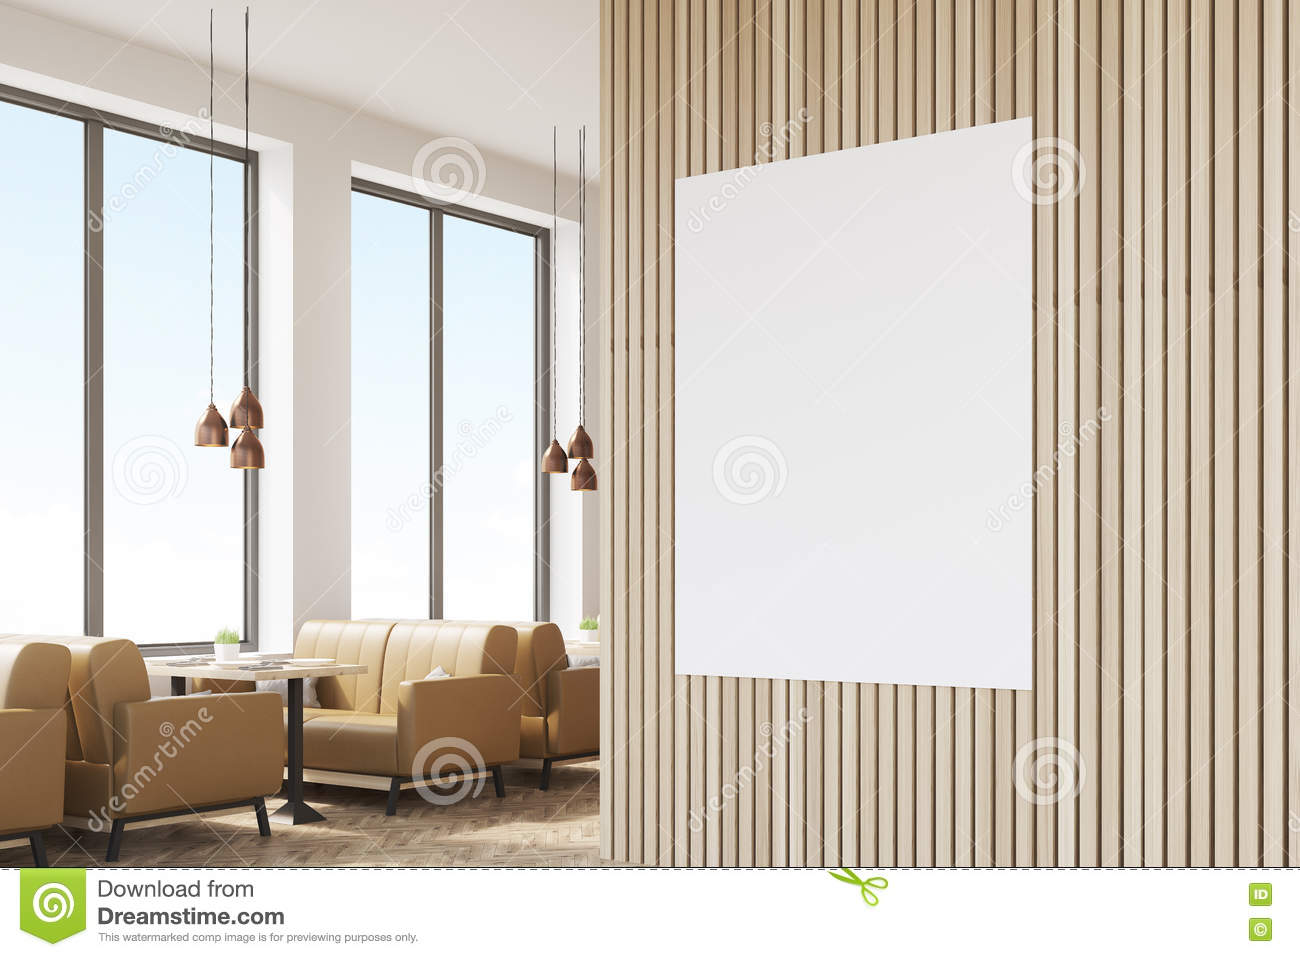 close up of poster in cafe with light walls stock illustration